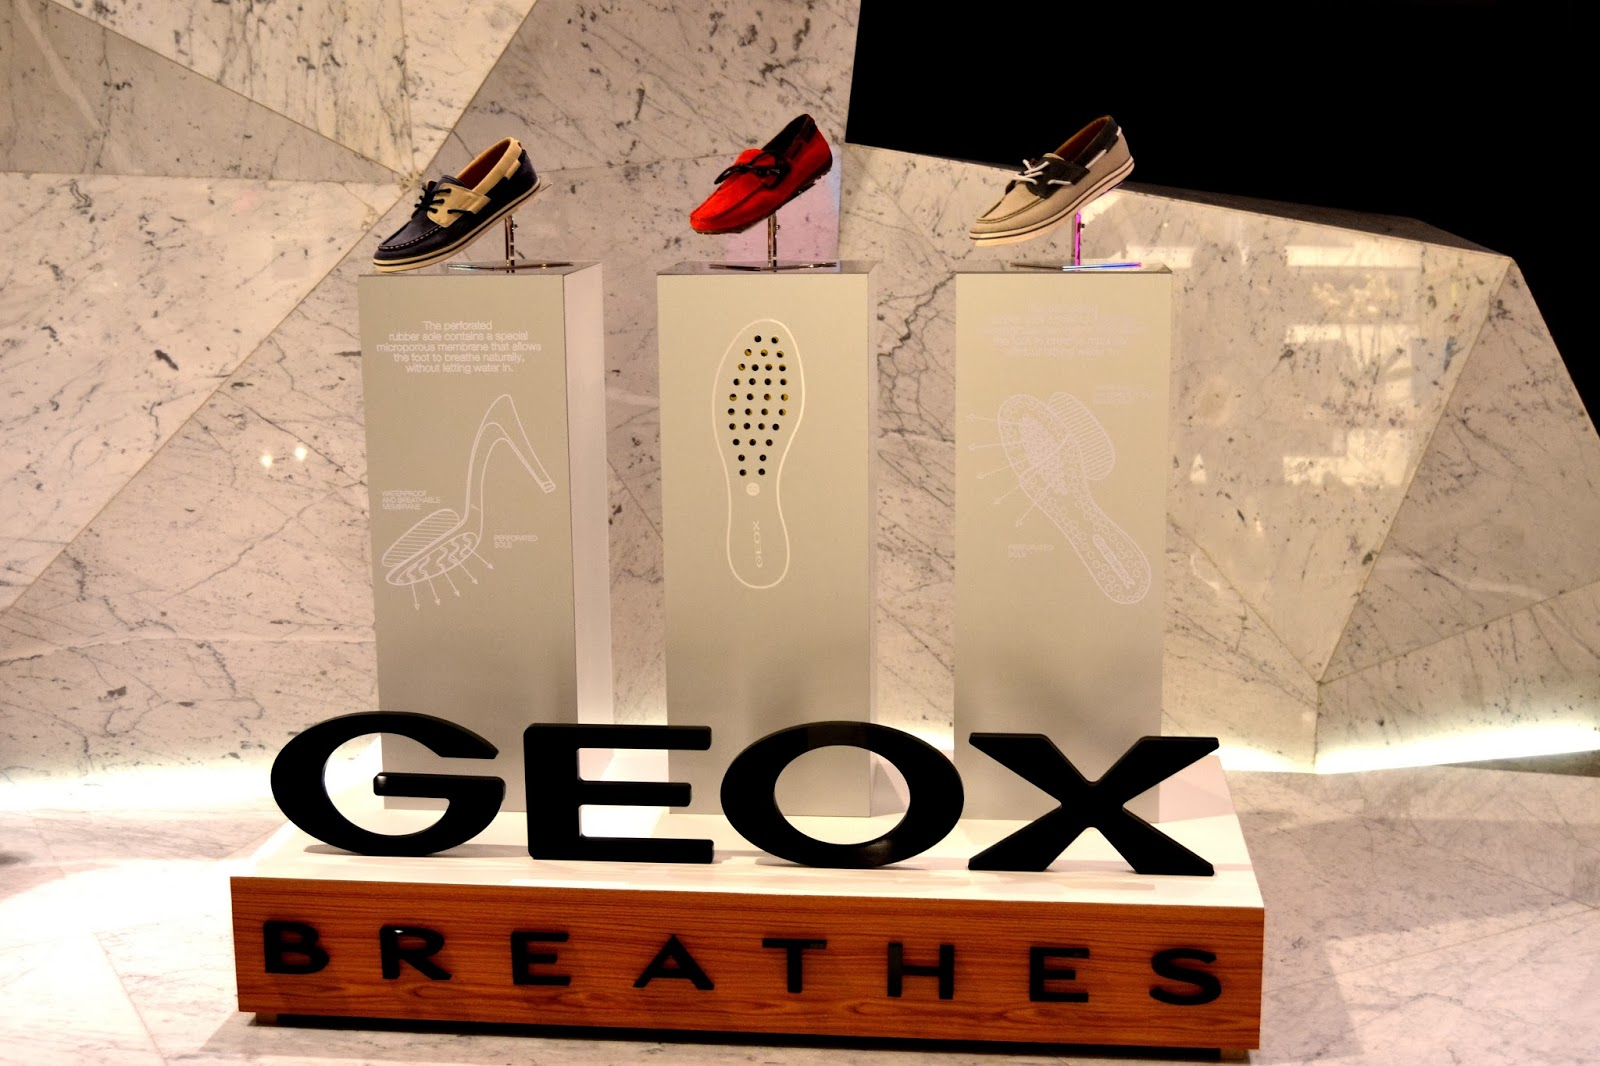 http://thestylechoreo.blogspot.ae/2014/01/geox-breathes-ss14-collection-launch.html